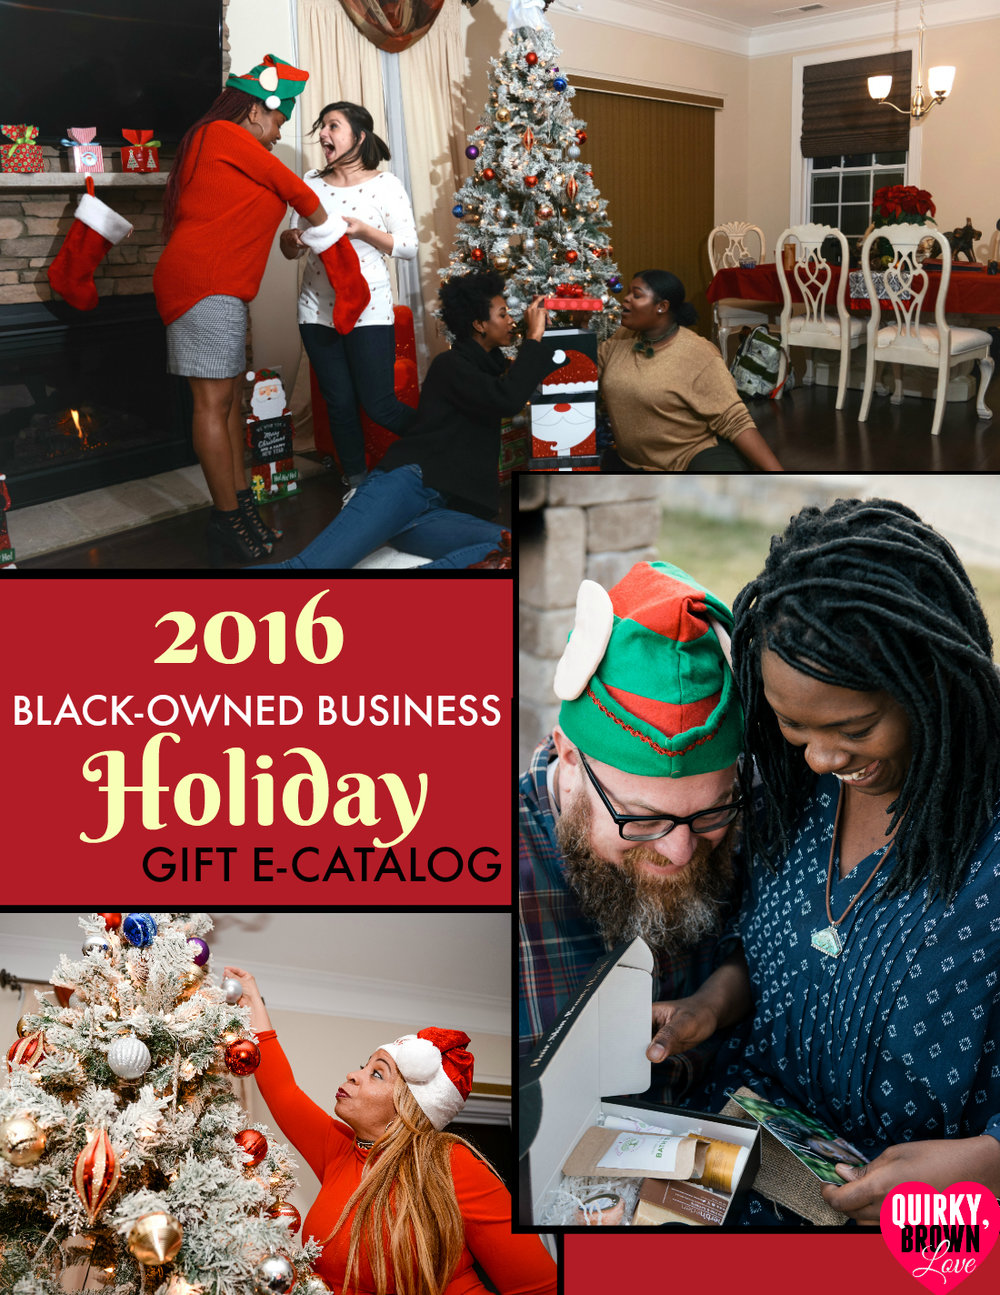 2016 Black Business Holiday Catalog from  QuirkyBrownLove